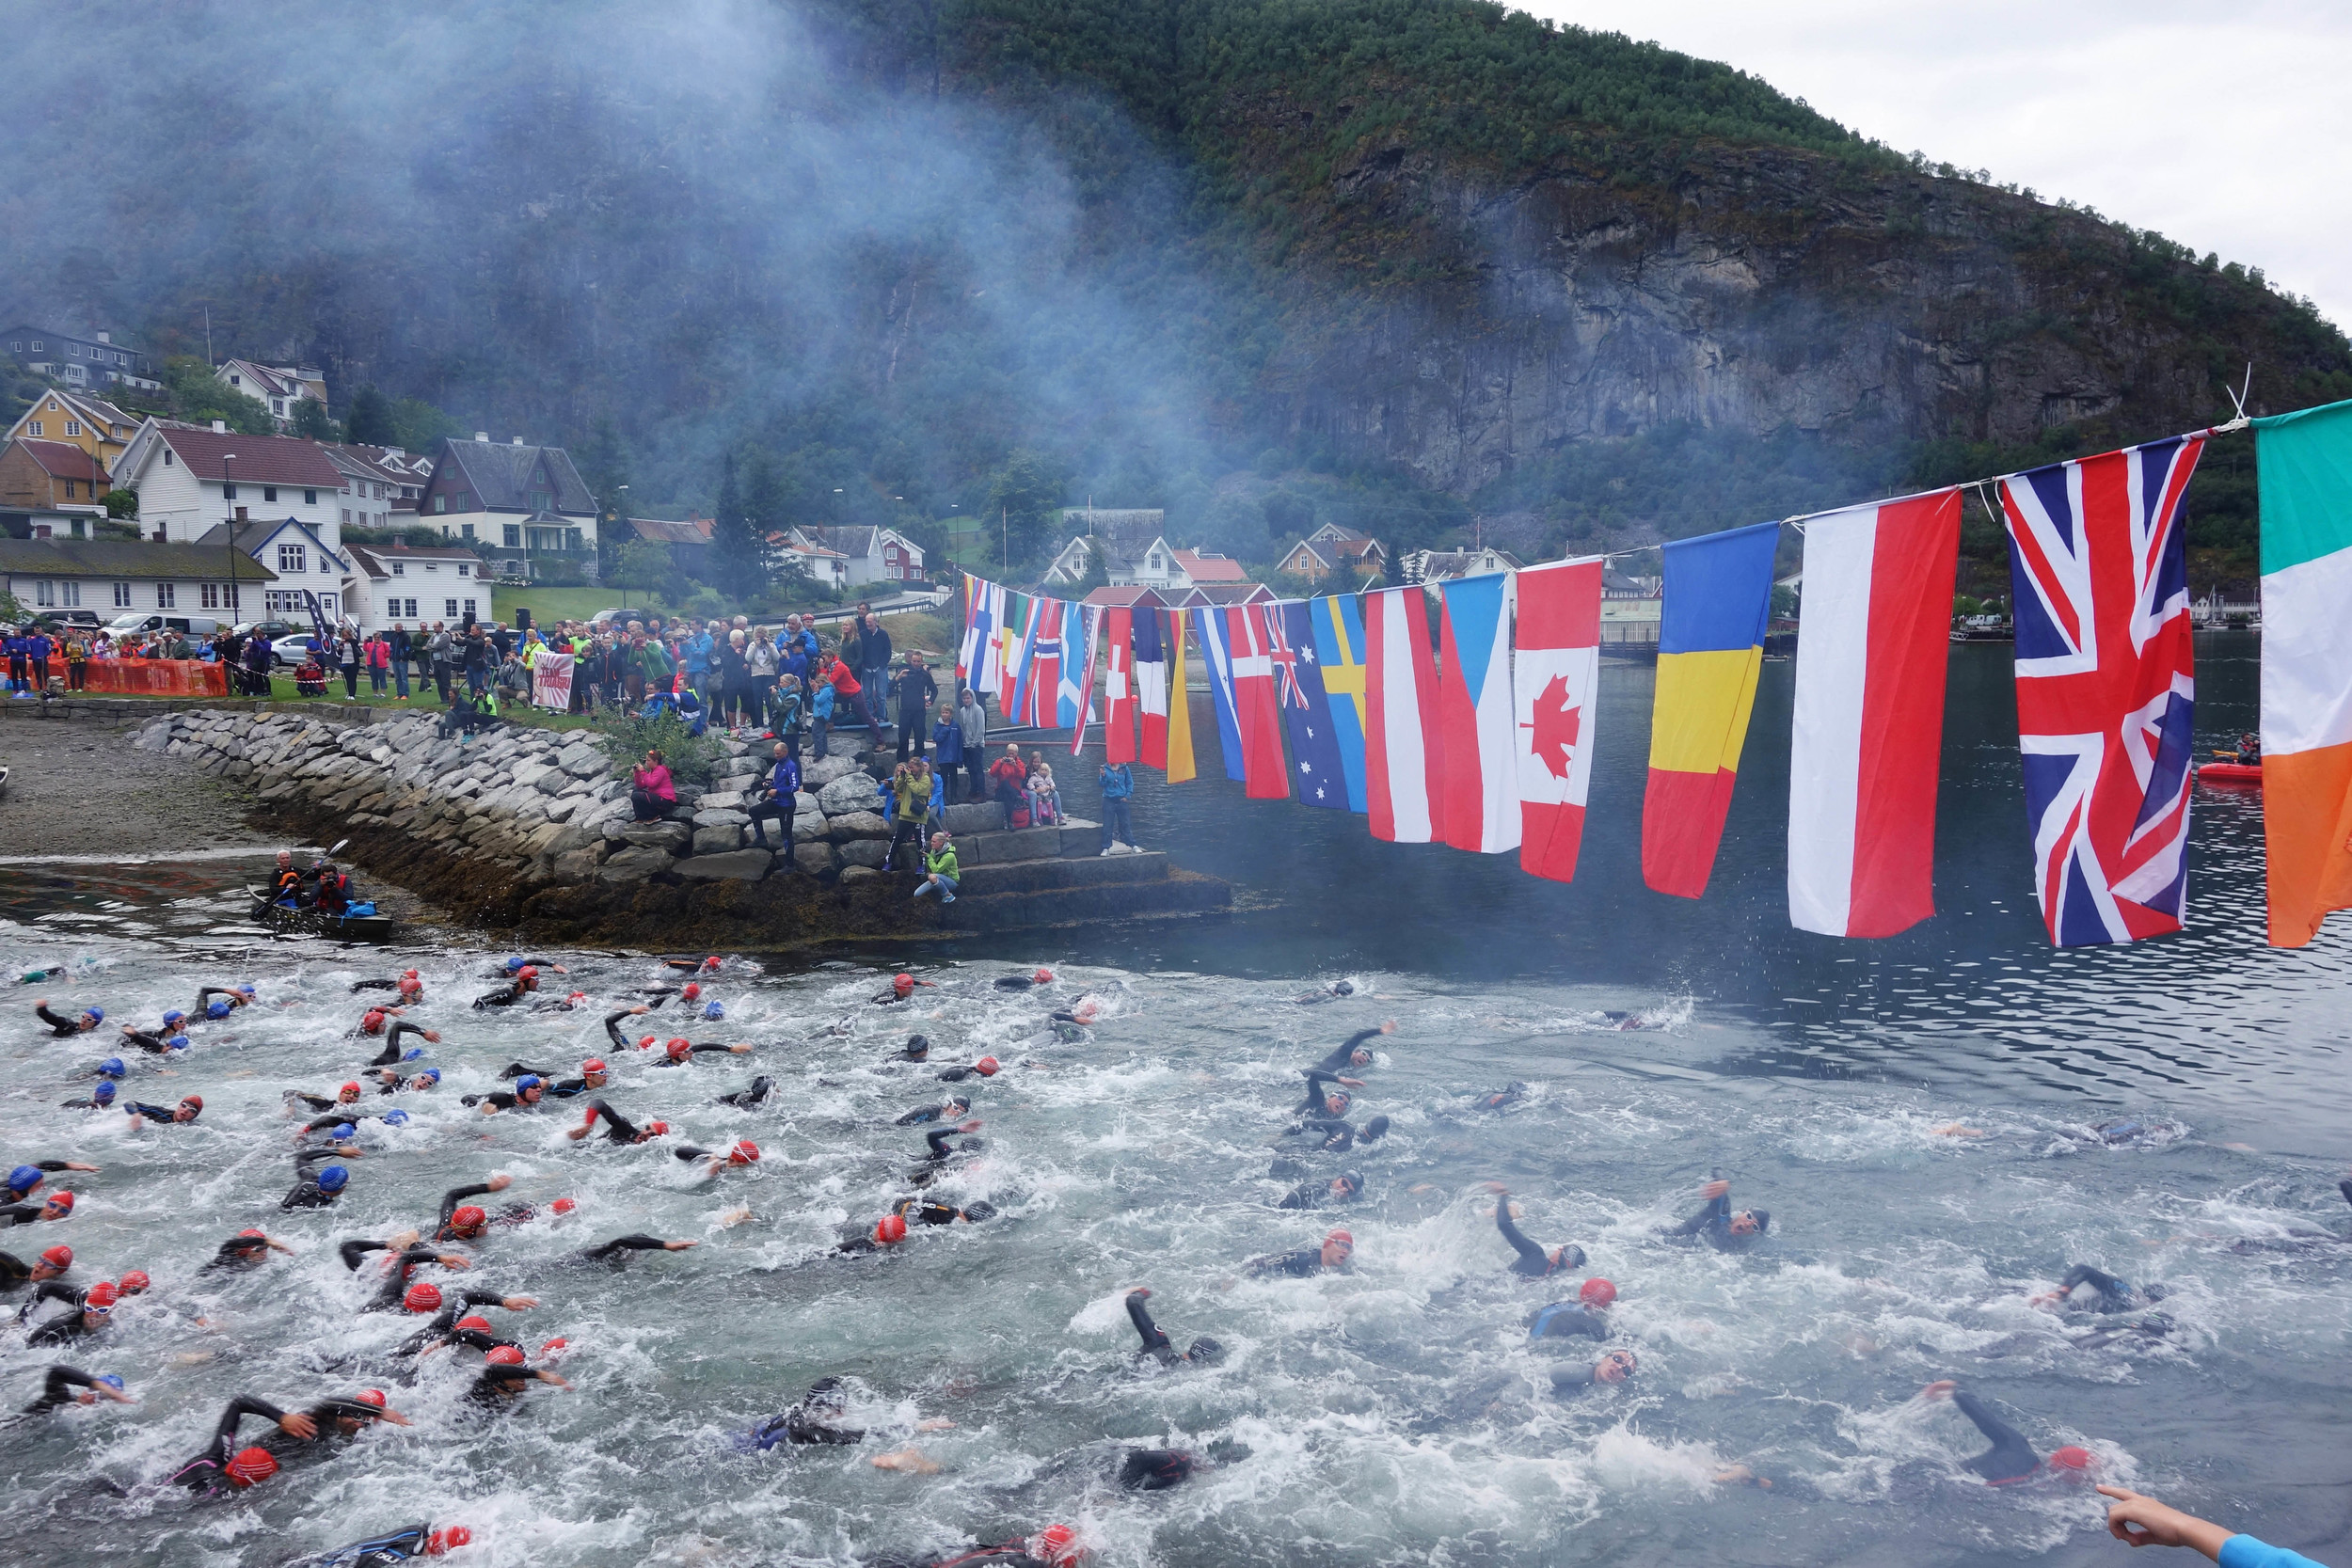 Seconds after the start of the Aurland Xtreme Triathlon 2014 where swimmers exit the bay for their 1.900 meters in the fjords. You can find me just right where the finger points at the bottom right.